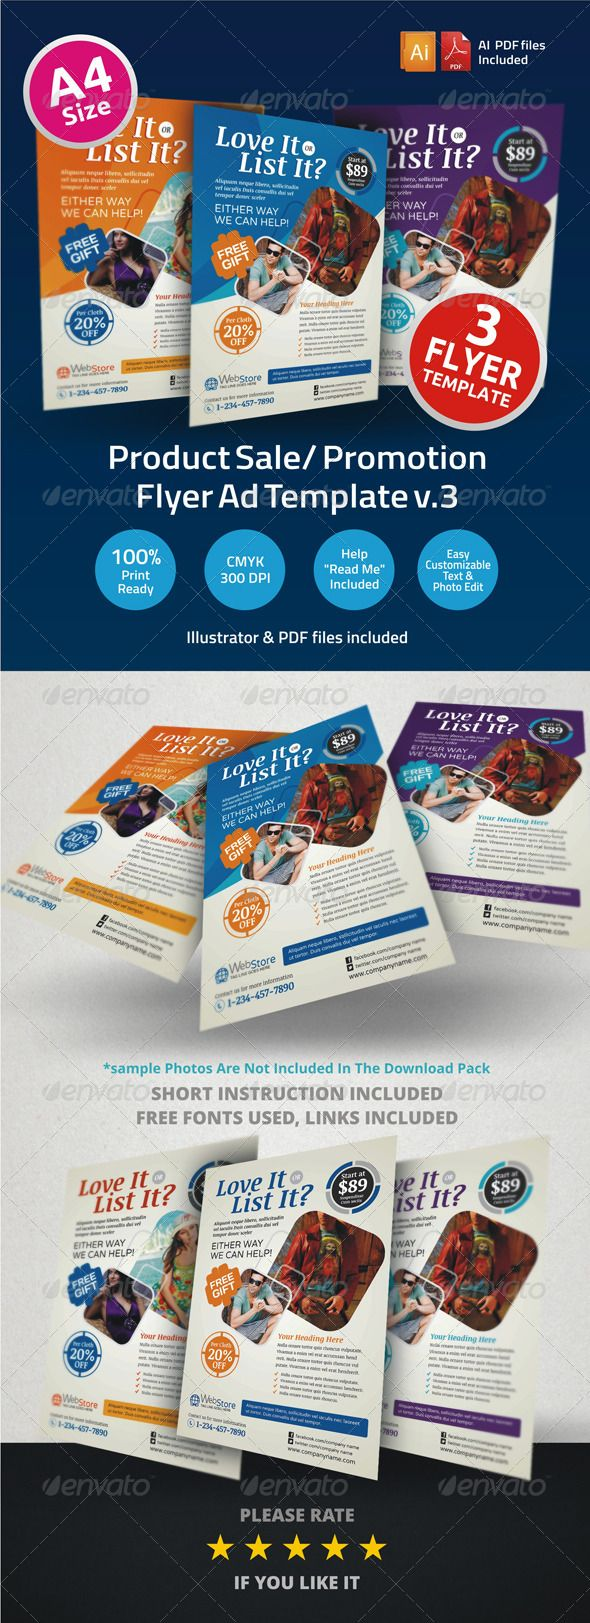 best images about business flyer product promotion flyer ad v3